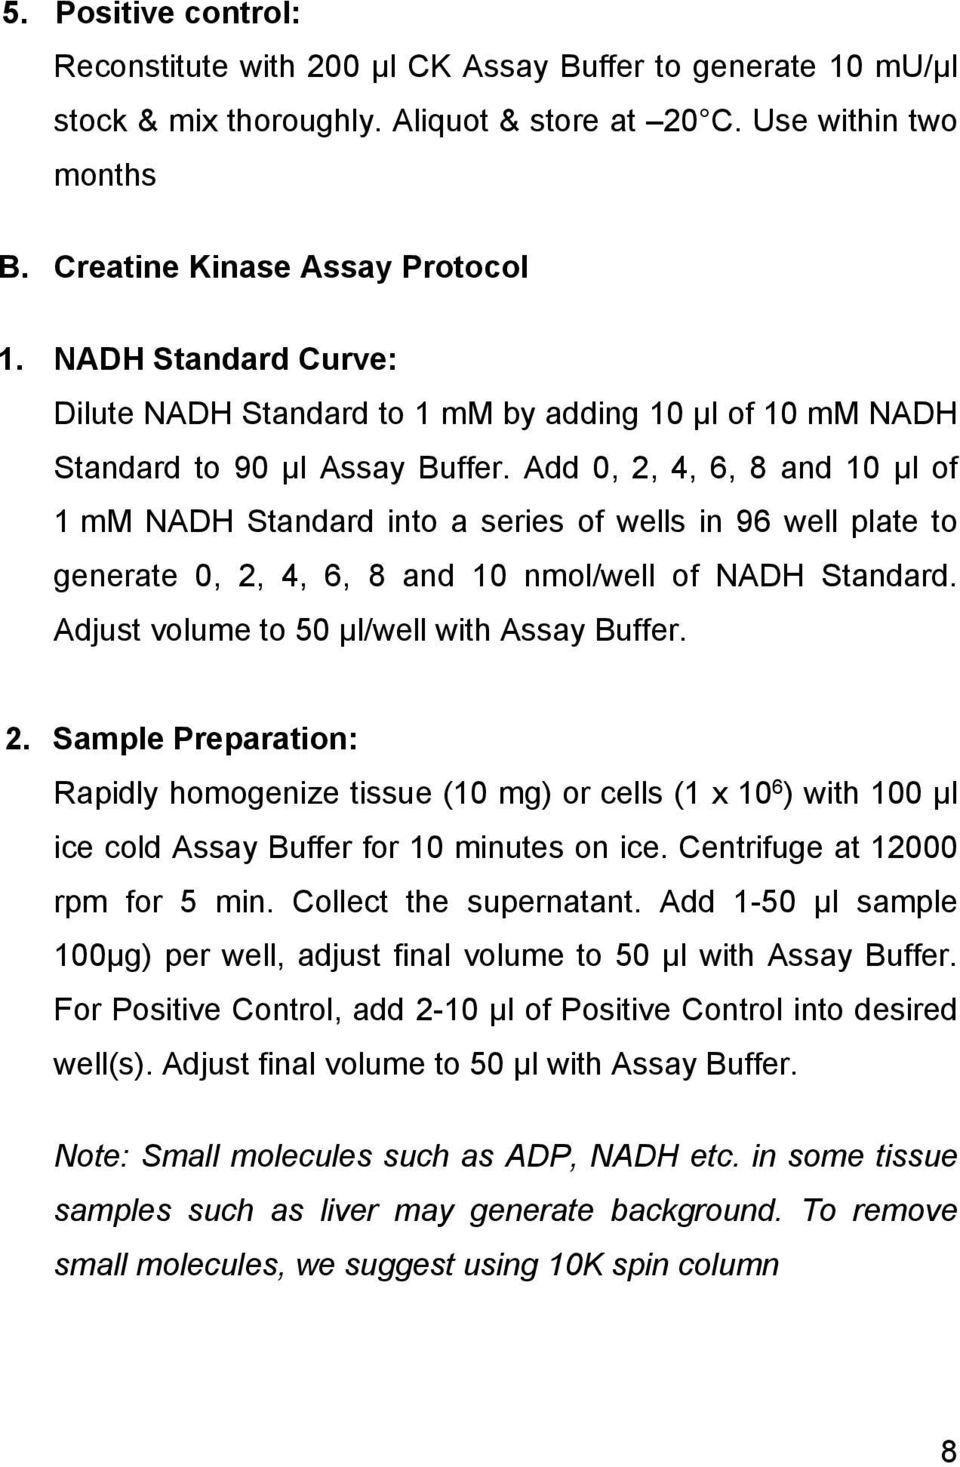 Add 0, 2, 4, 6, 8 and 10 μl of 1 mm NADH Standard into a series of wells in 96 well plate to generate 0, 2, 4, 6, 8 and 10 nmol/well of NADH Standard. Adjust volume to 50 μl/well with Assay Buffer. 2. Sample Preparation: Rapidly homogenize tissue (10 mg) or cells (1 x 10 6 ) with 100 μl ice cold Assay Buffer for 10 minutes on ice.